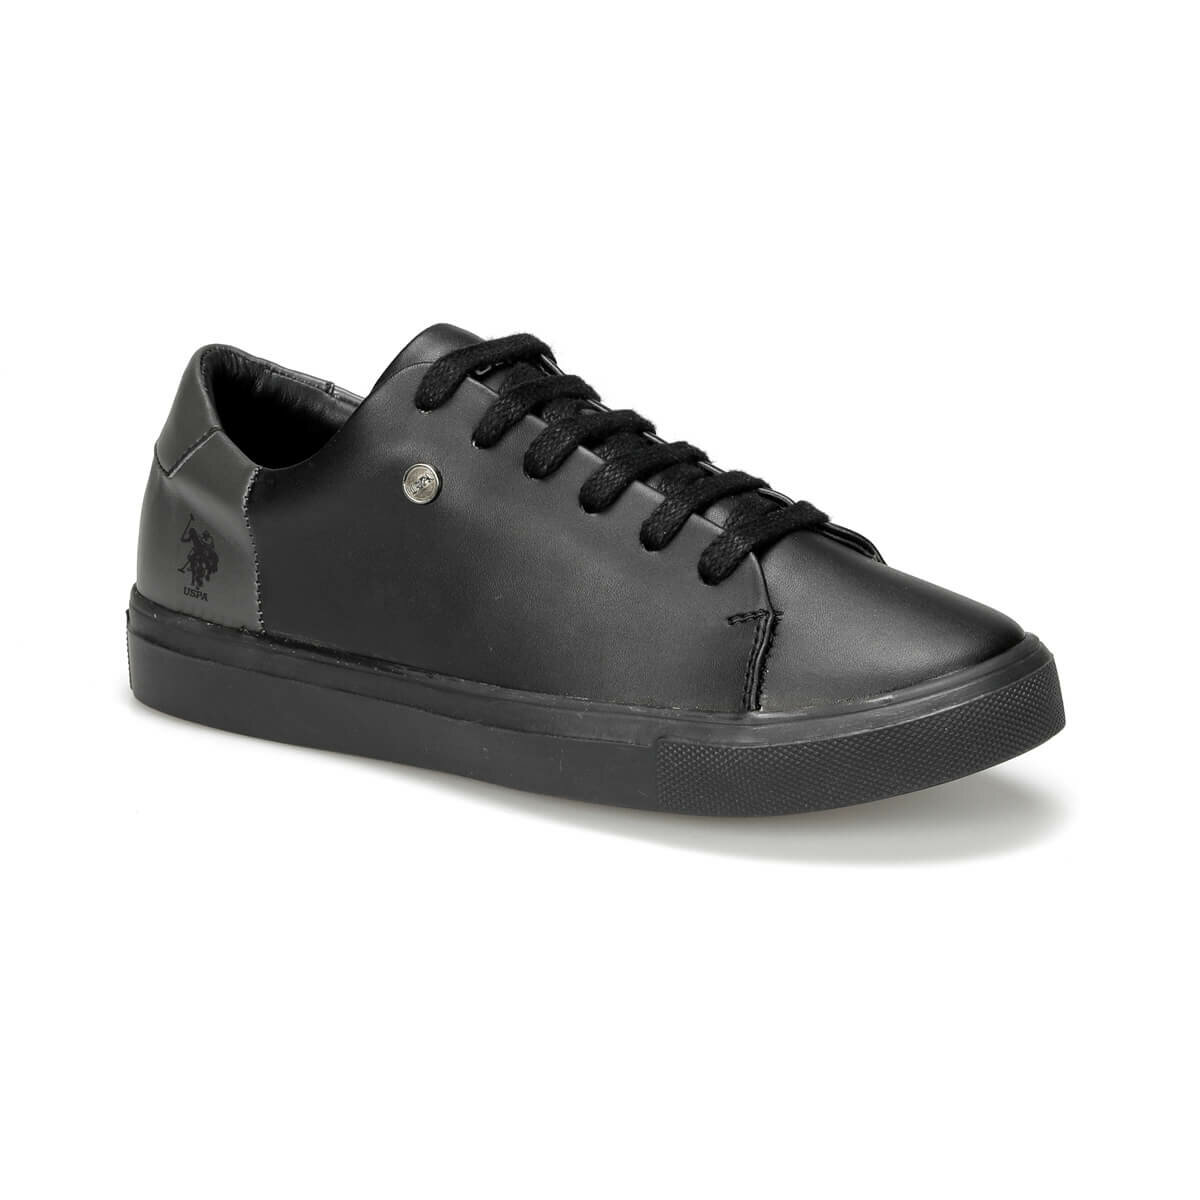 FLO NORDES 9PR Black Women 'S Sneaker Shoes U.S. POLO ASSN.